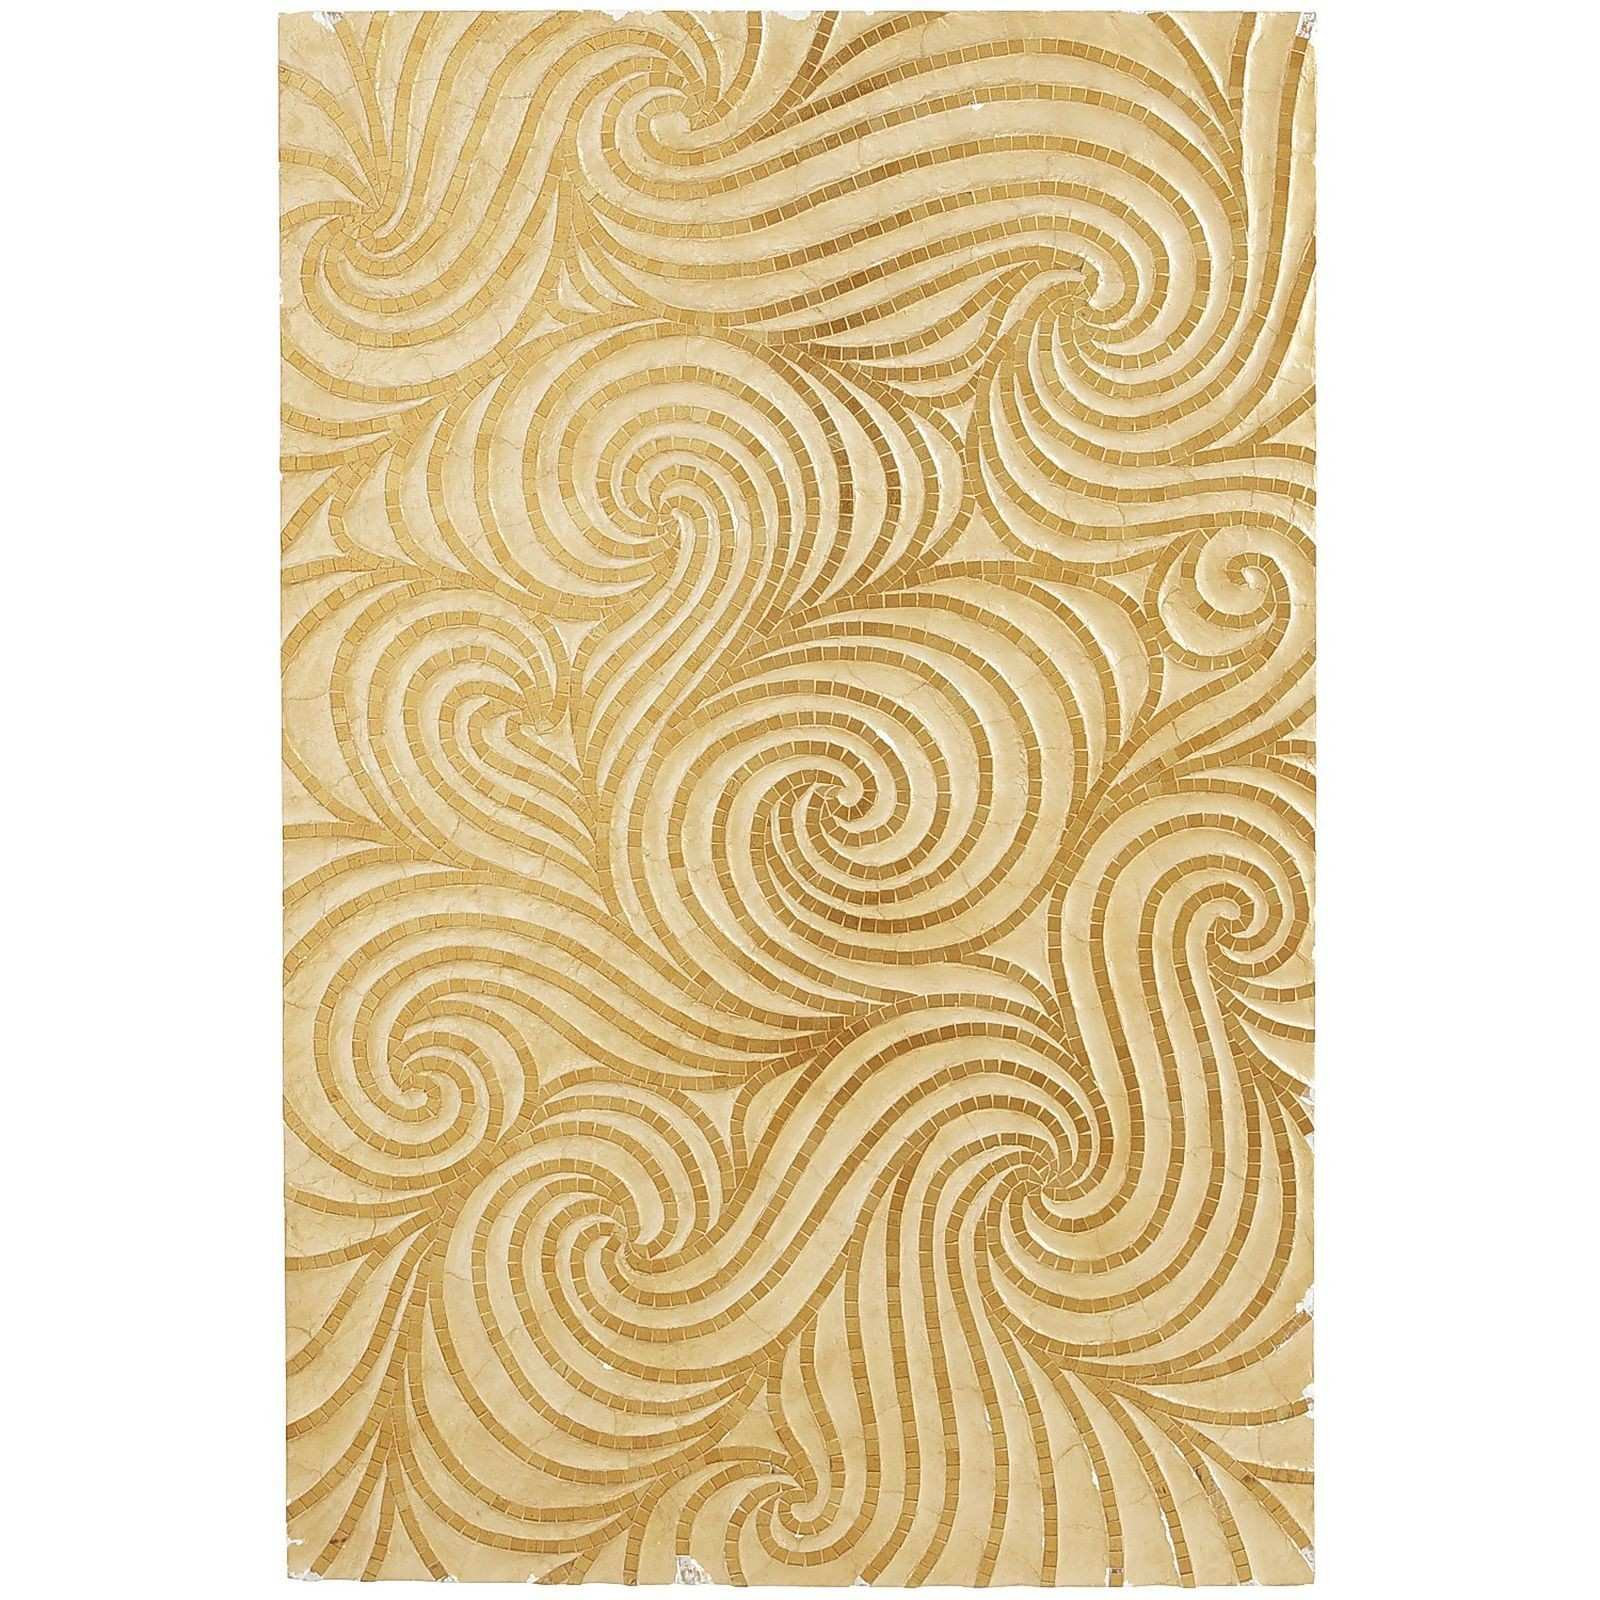 Golden swirls wall panel with wood shell & glass $250